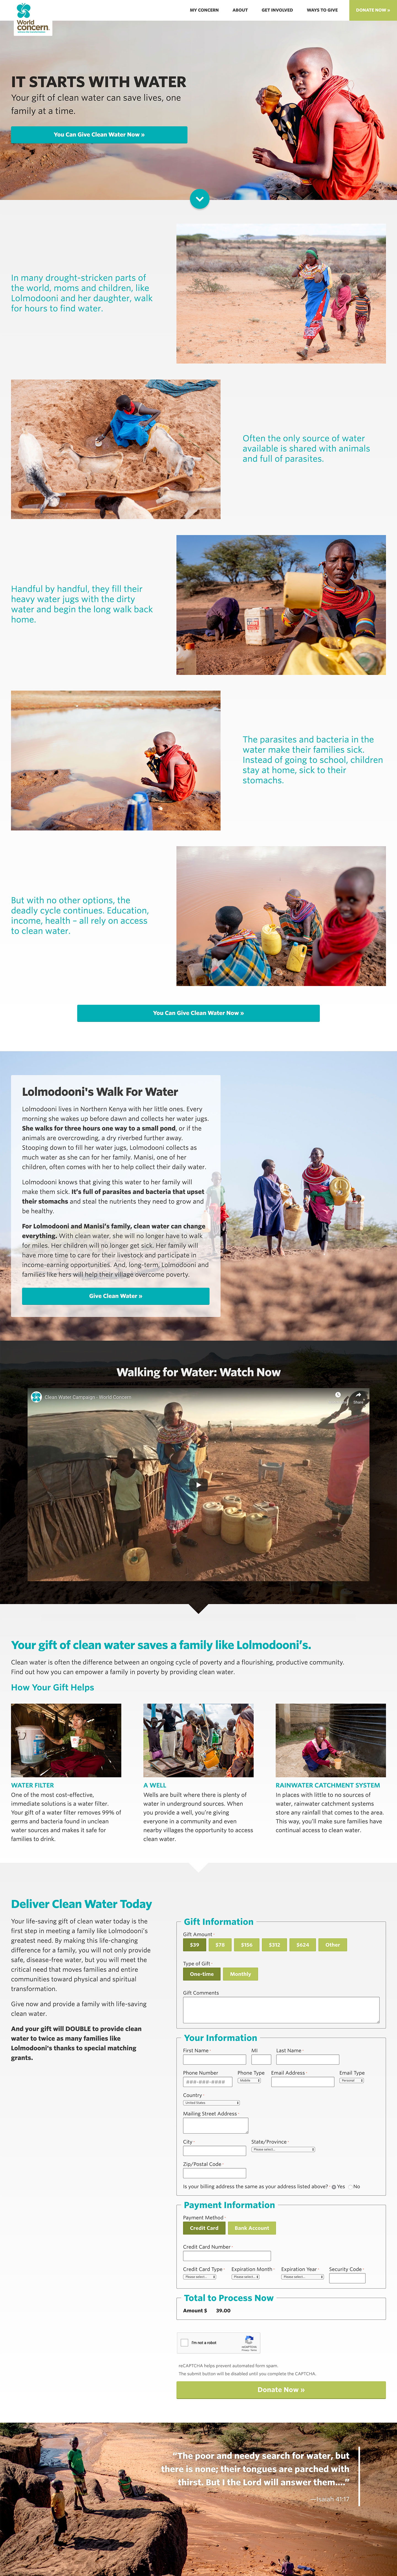 worldconcern-water-campaign